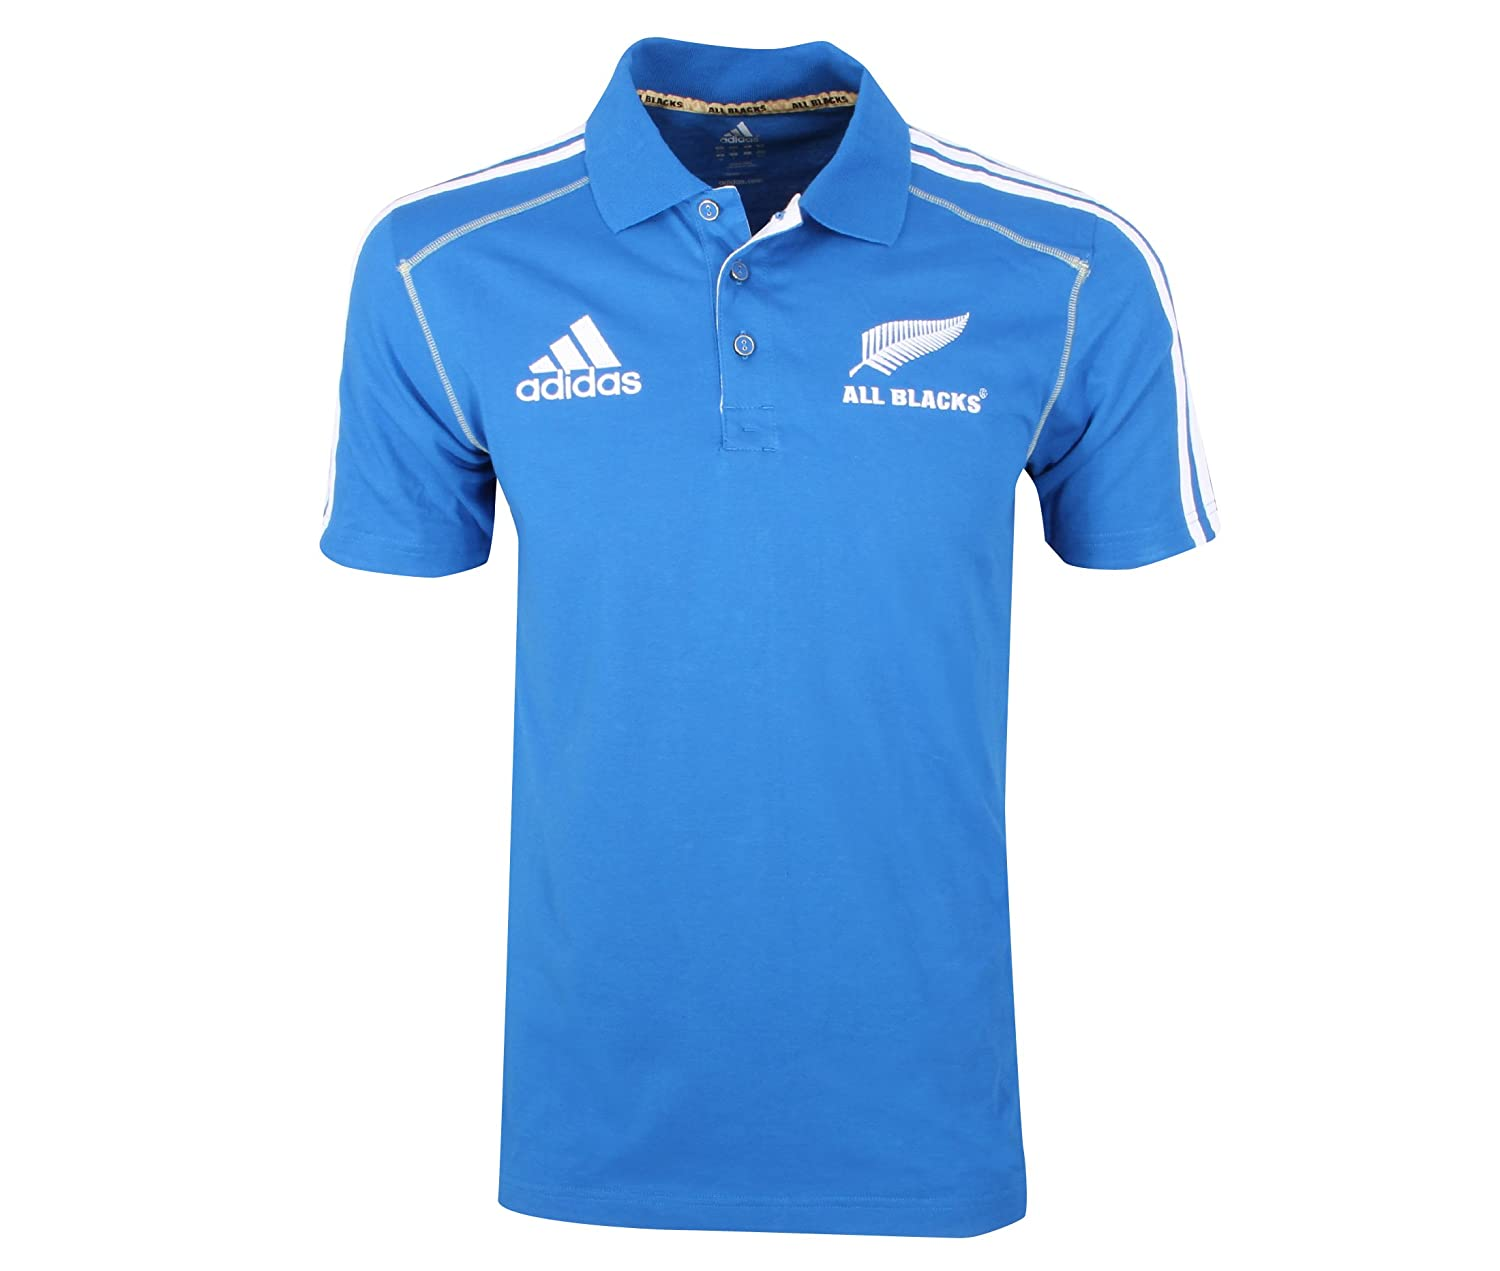 adidas All Blacks Polo de Nueva Zelanda Talla S: Amazon.es ...